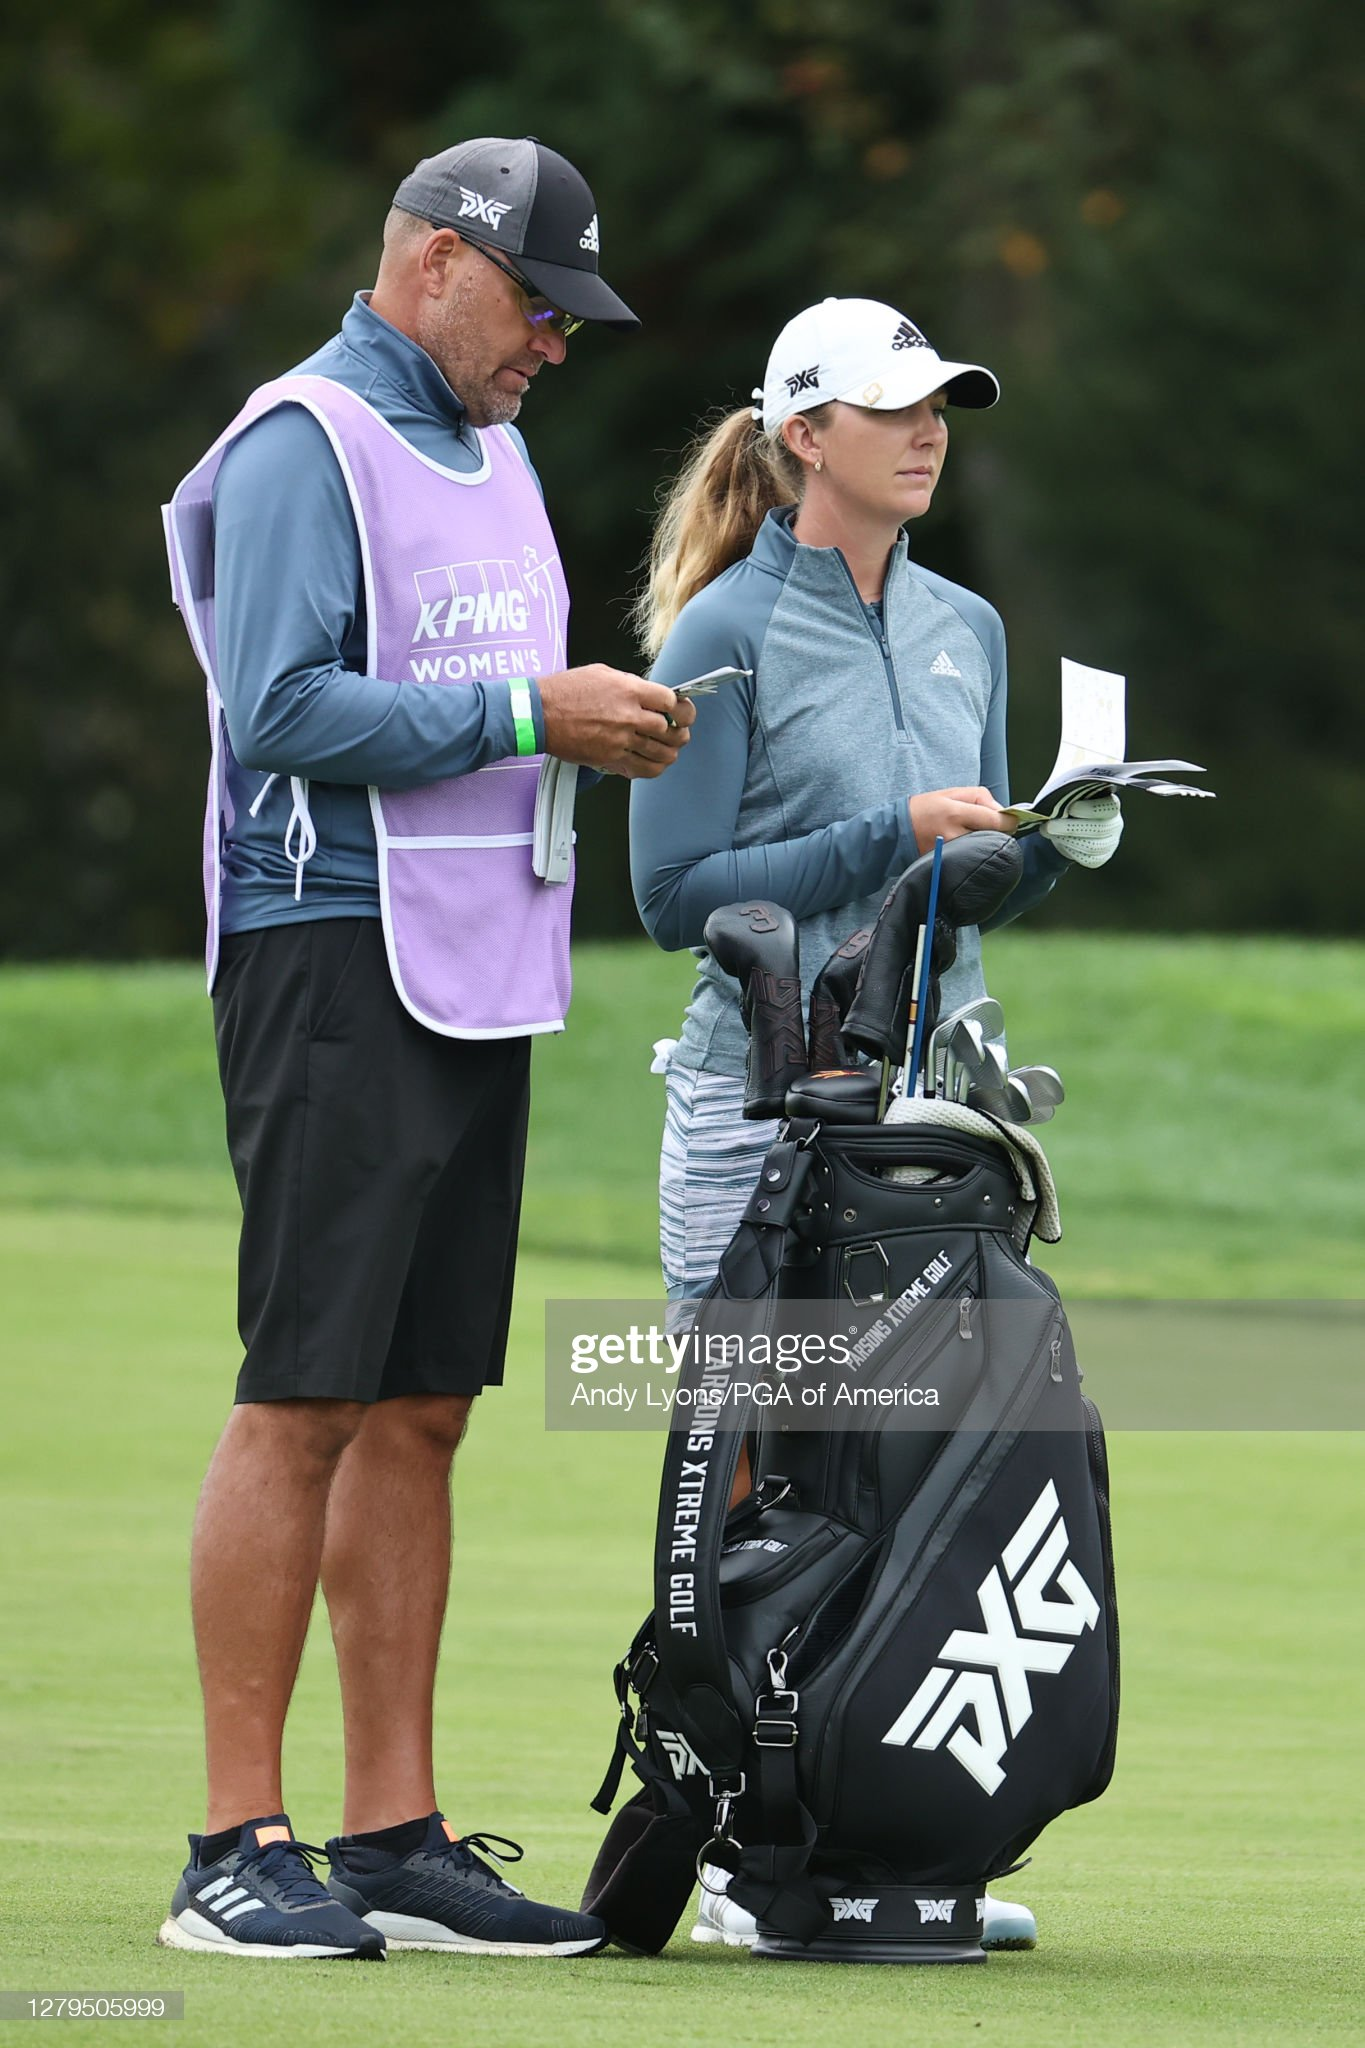 https://media.gettyimages.com/photos/linnea-strom-of-sweden-plays-talks-with-her-caddie-on-the-fourth-hole-picture-id1279505999?s=2048x2048